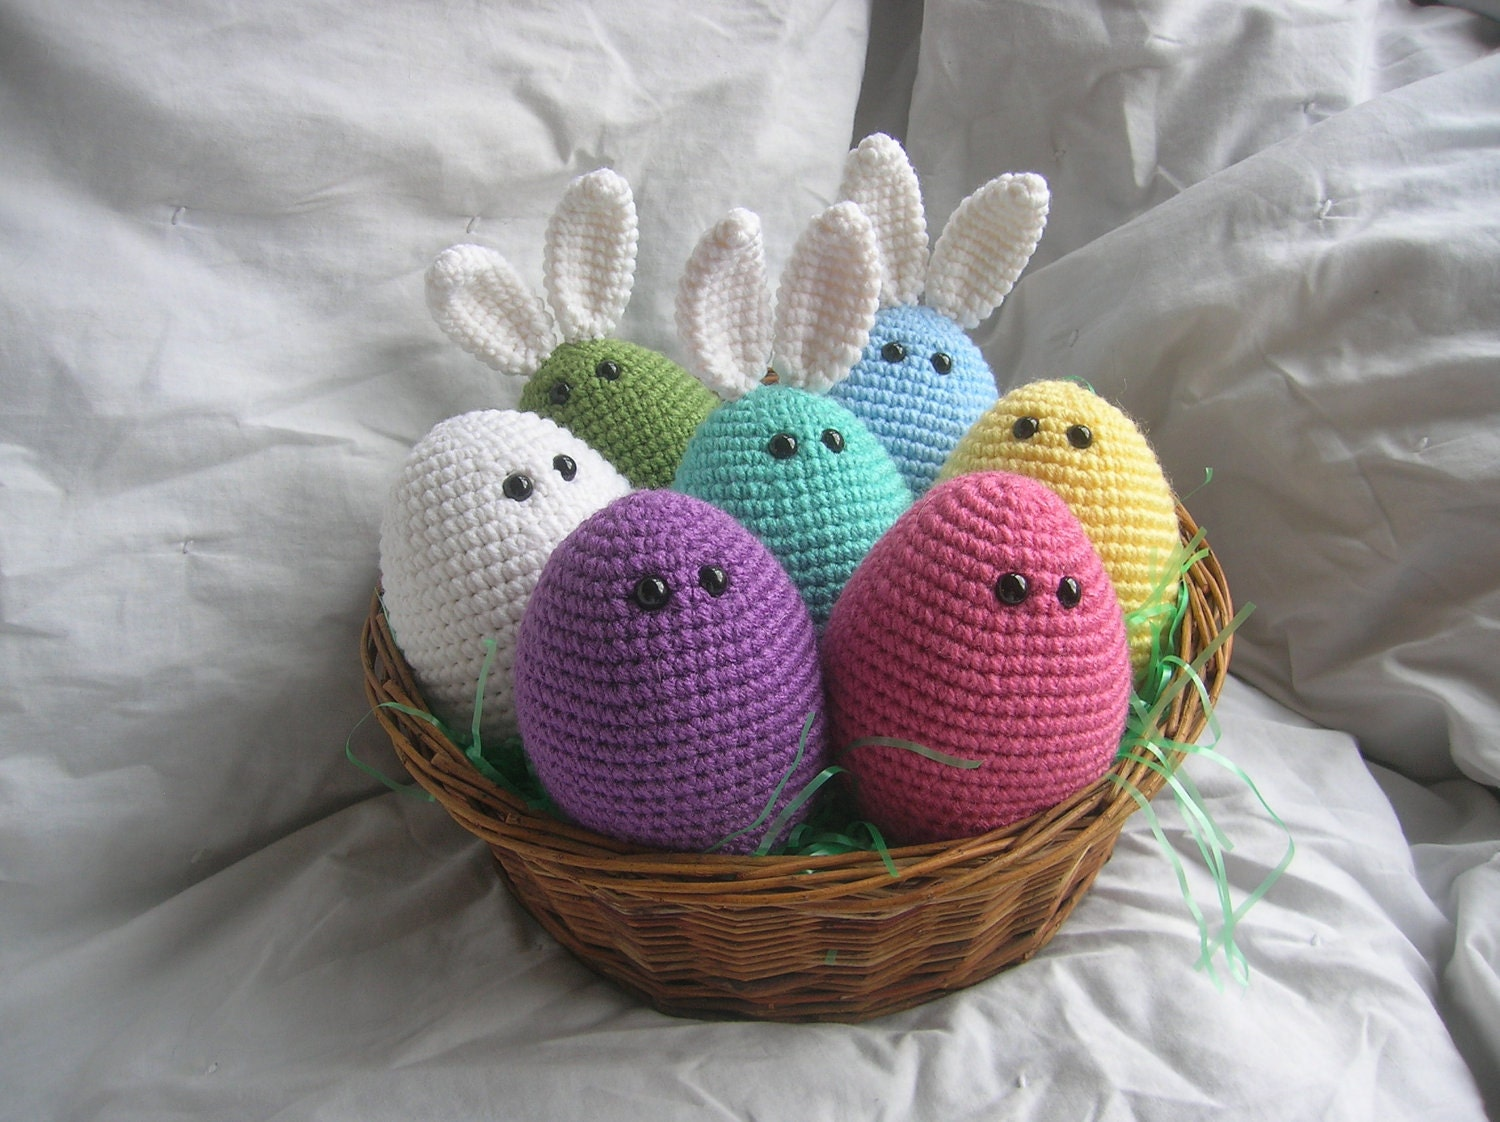 Amigurumi Easter Eggs Crochet Pattern : Easter Eggles Amigurumi Plush Crochet PATTERN ONLY PDF